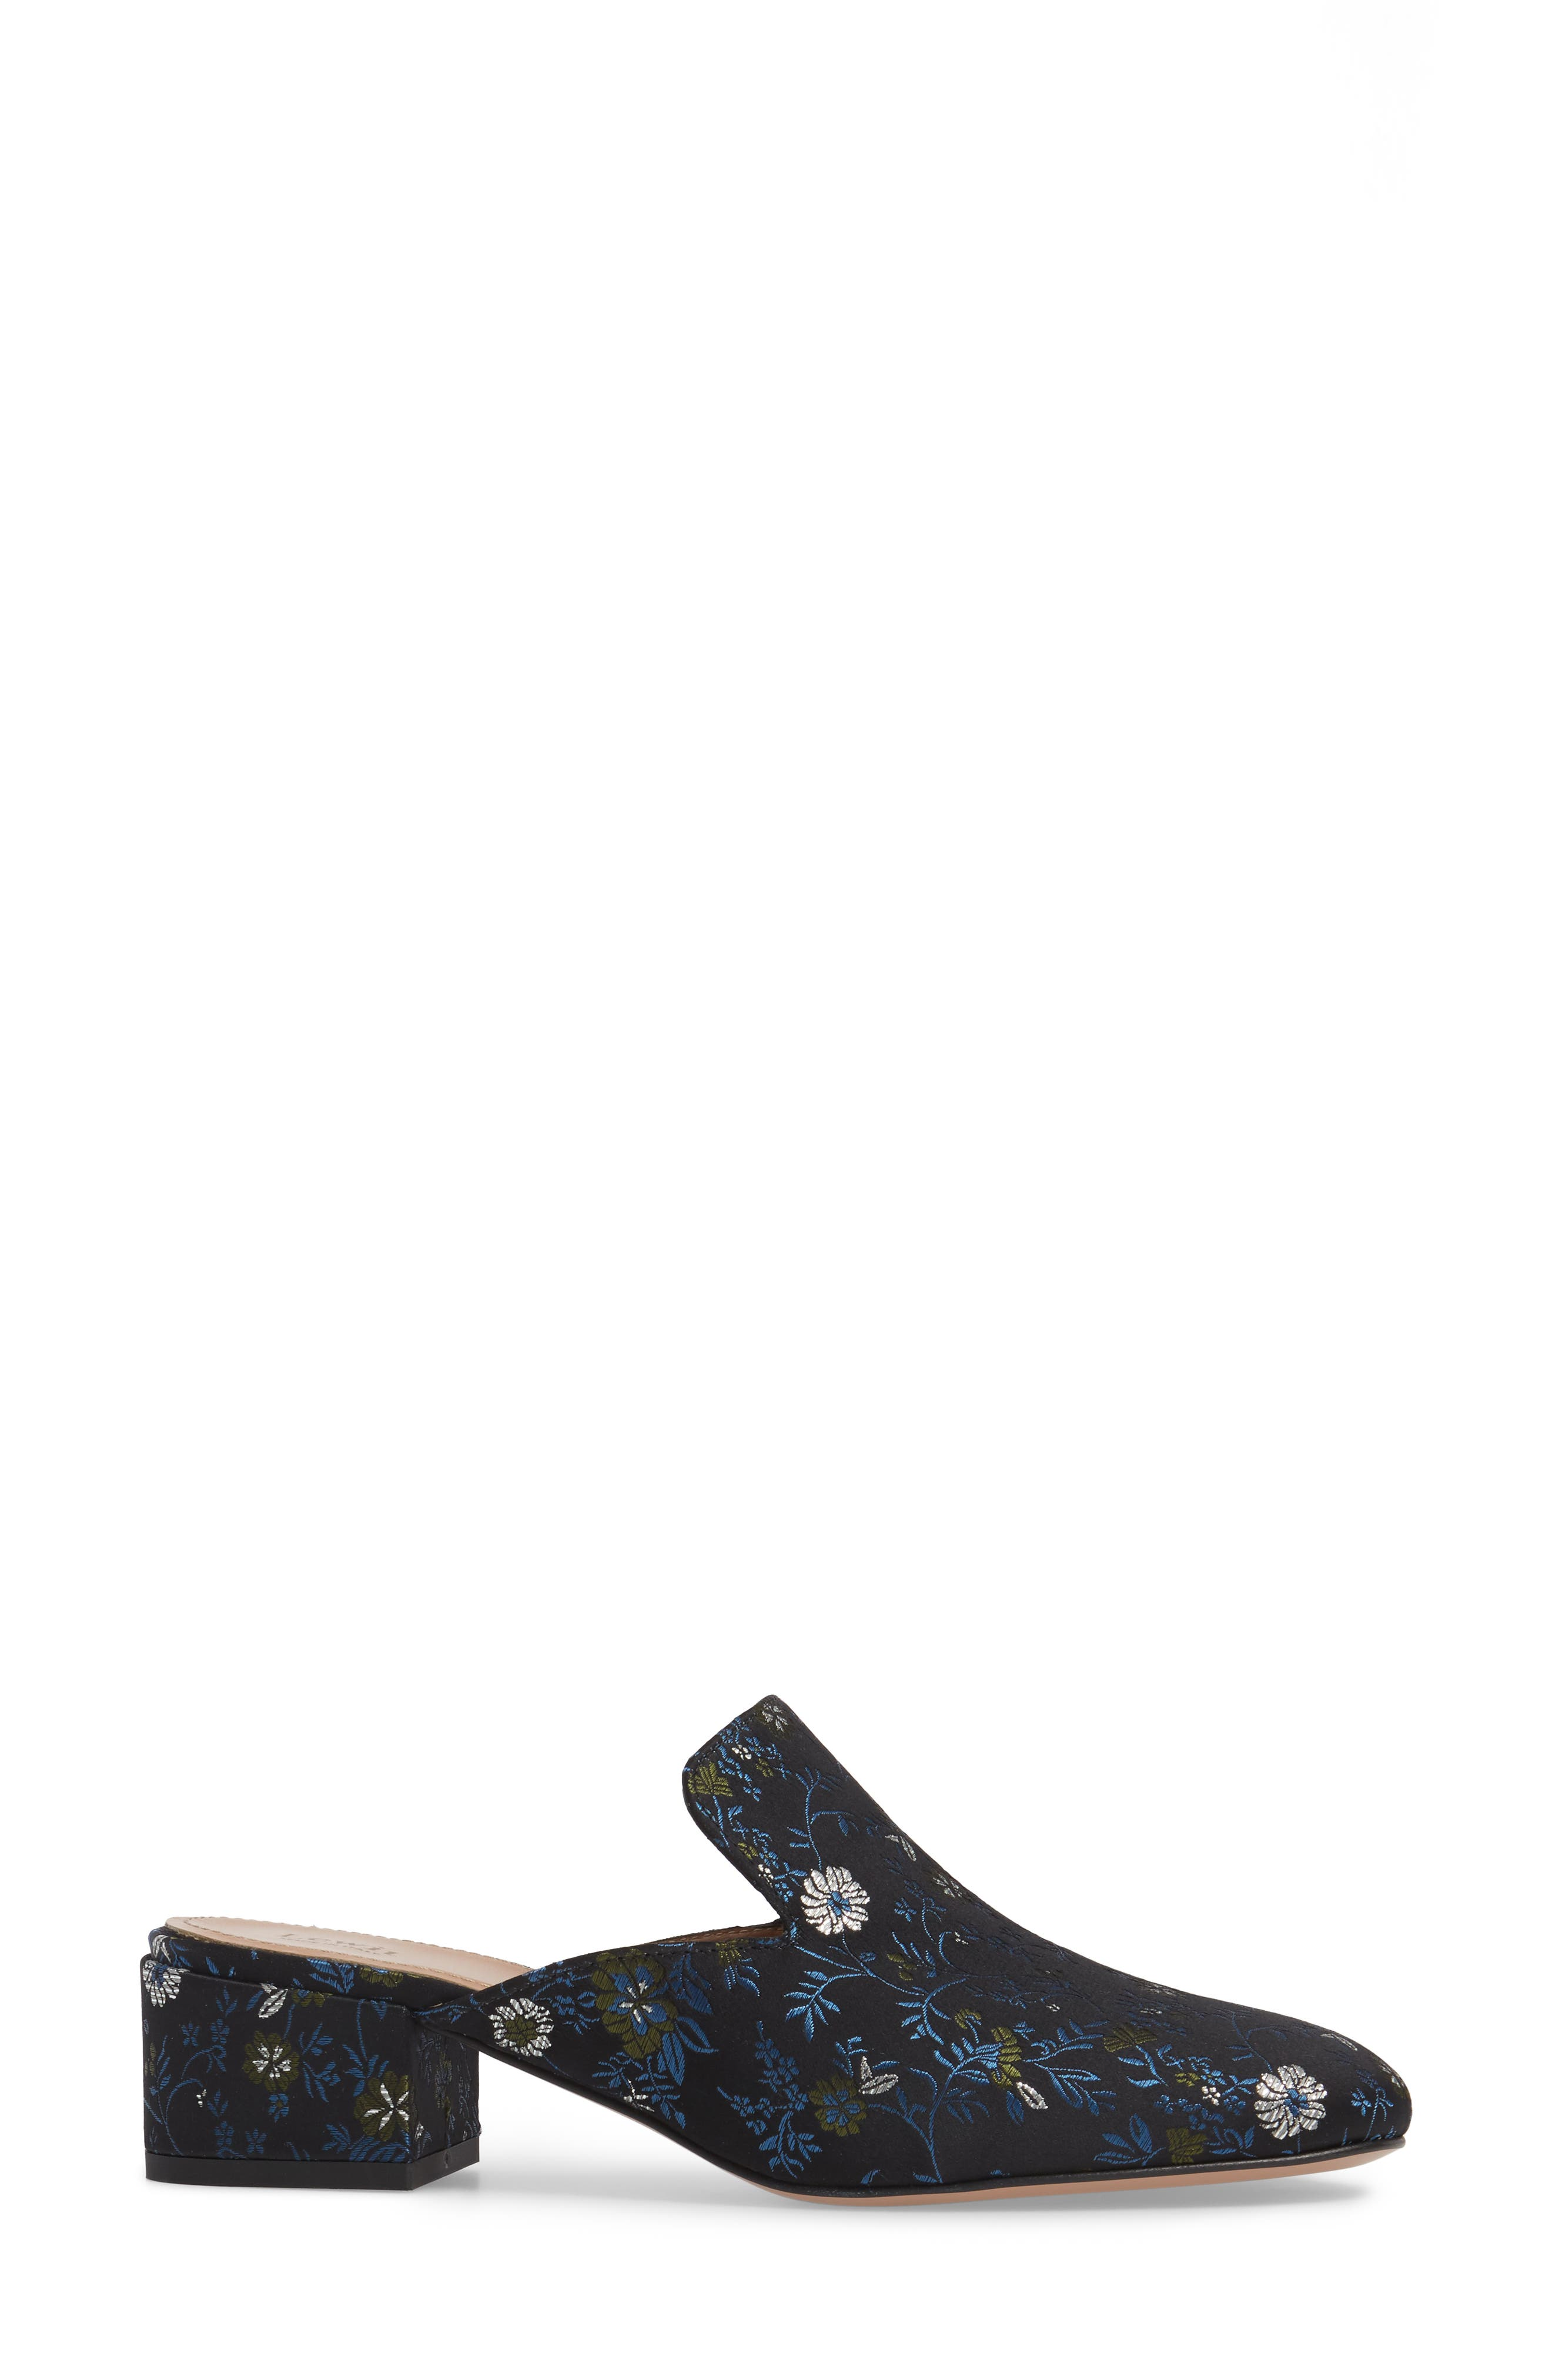 Alternate Image 3  - Lewit Bianca Embroidered Loafer Mule (Women)